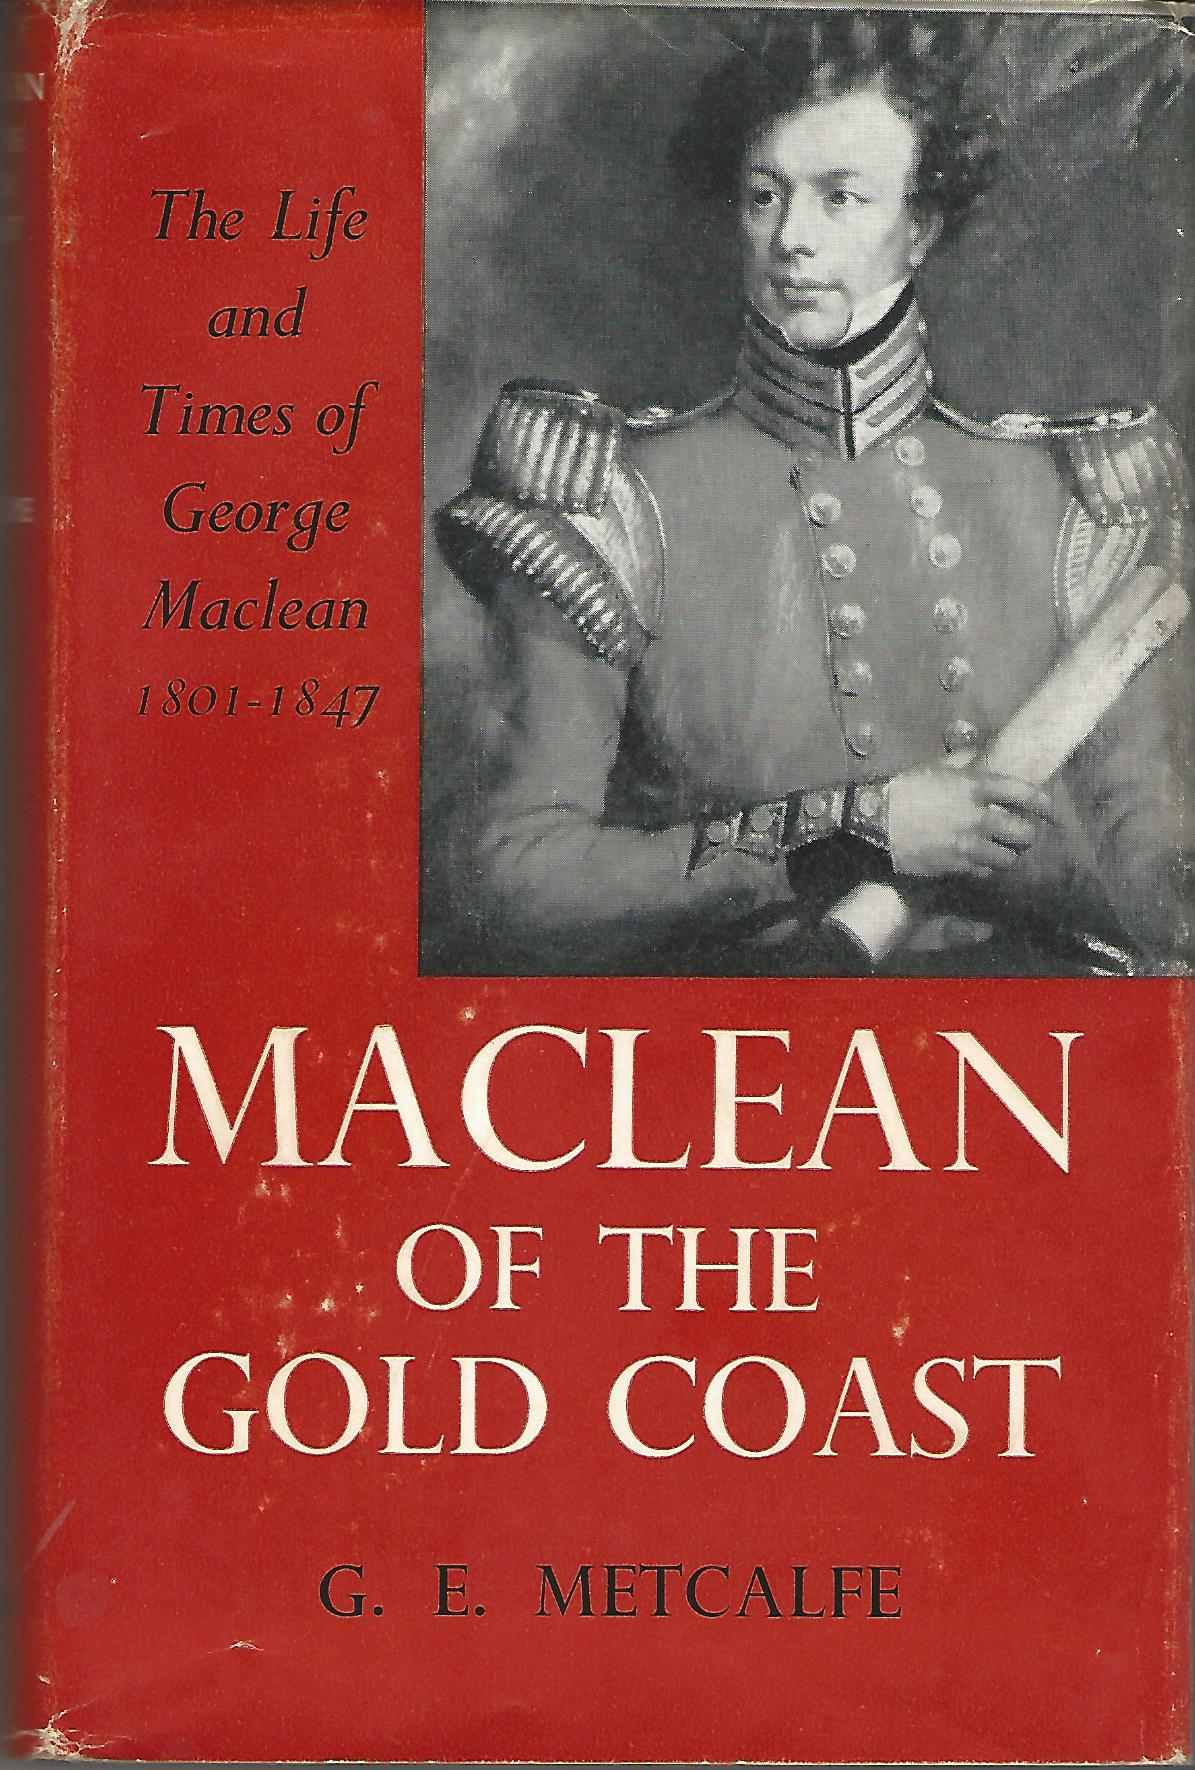 Image for Maclean of the Gold Coast: The Life and Times of George Maclean 1801-1847.